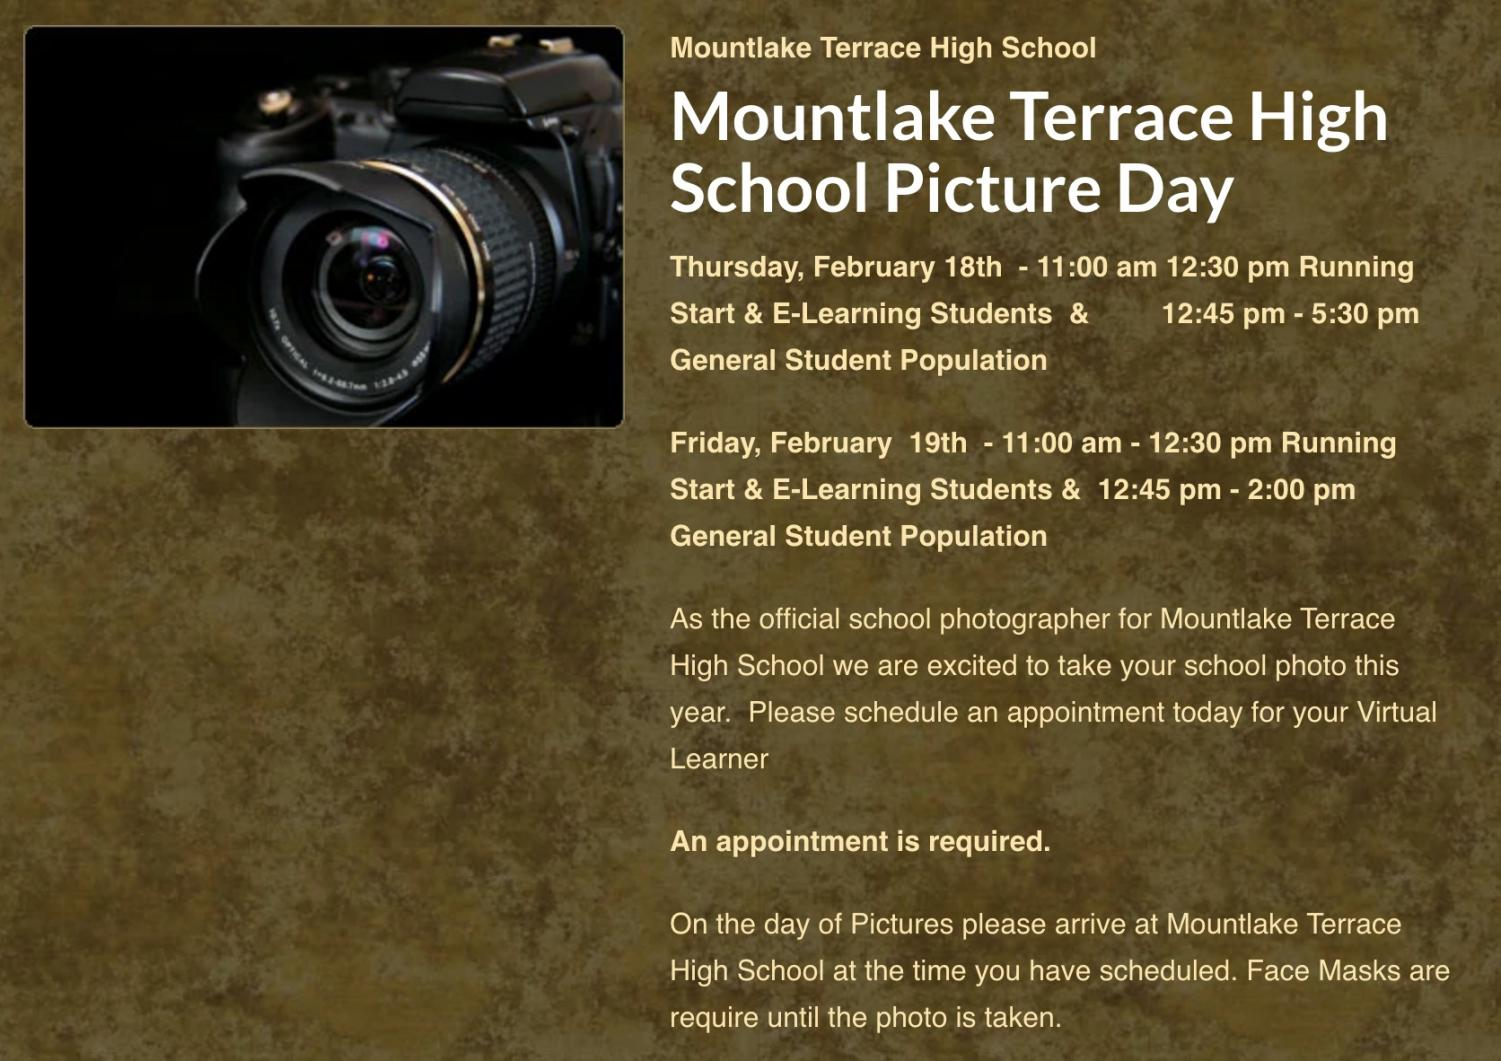 Sign up now for official school, yearbook photos